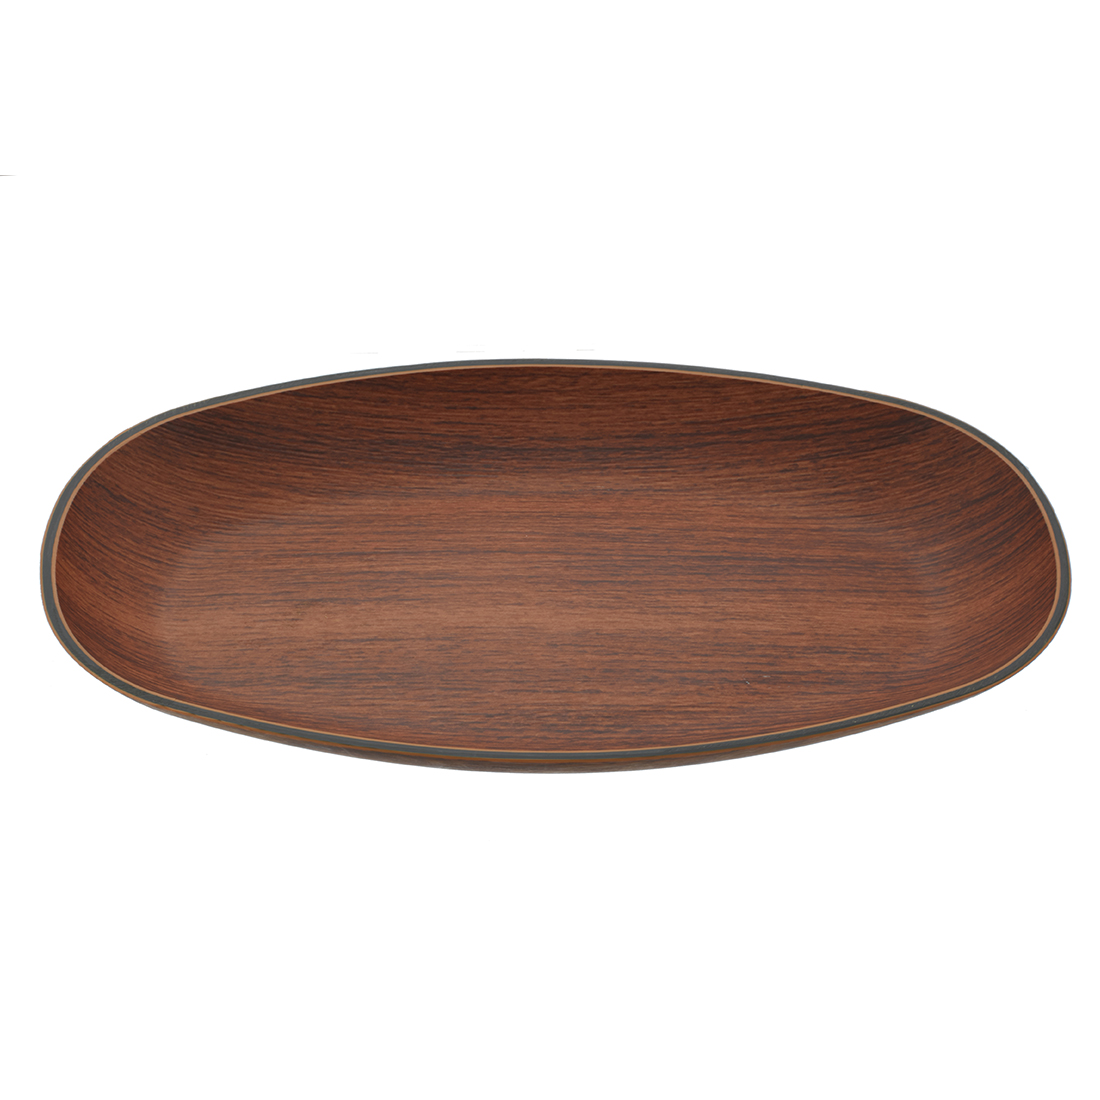 Oak Medium Serving Plate Plastic Platters in Brown Colour by Living Essence